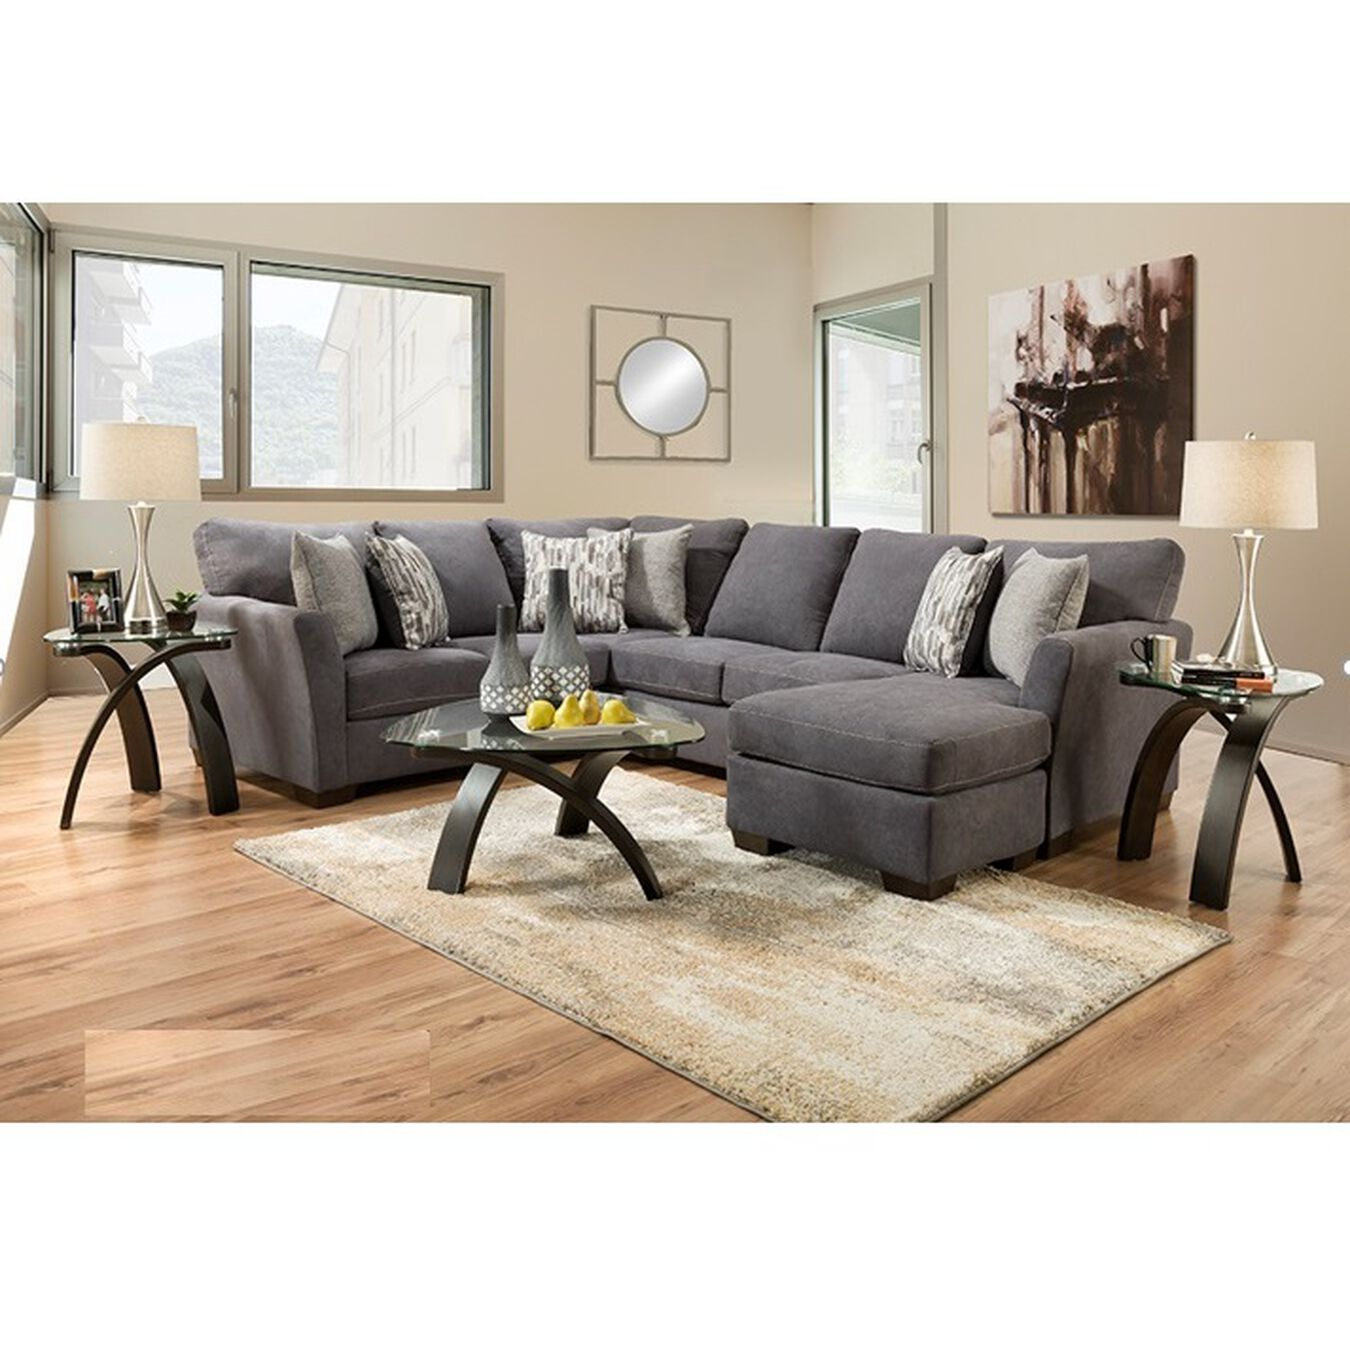 United sofa loveseat sets 2 piece cruze living room collection